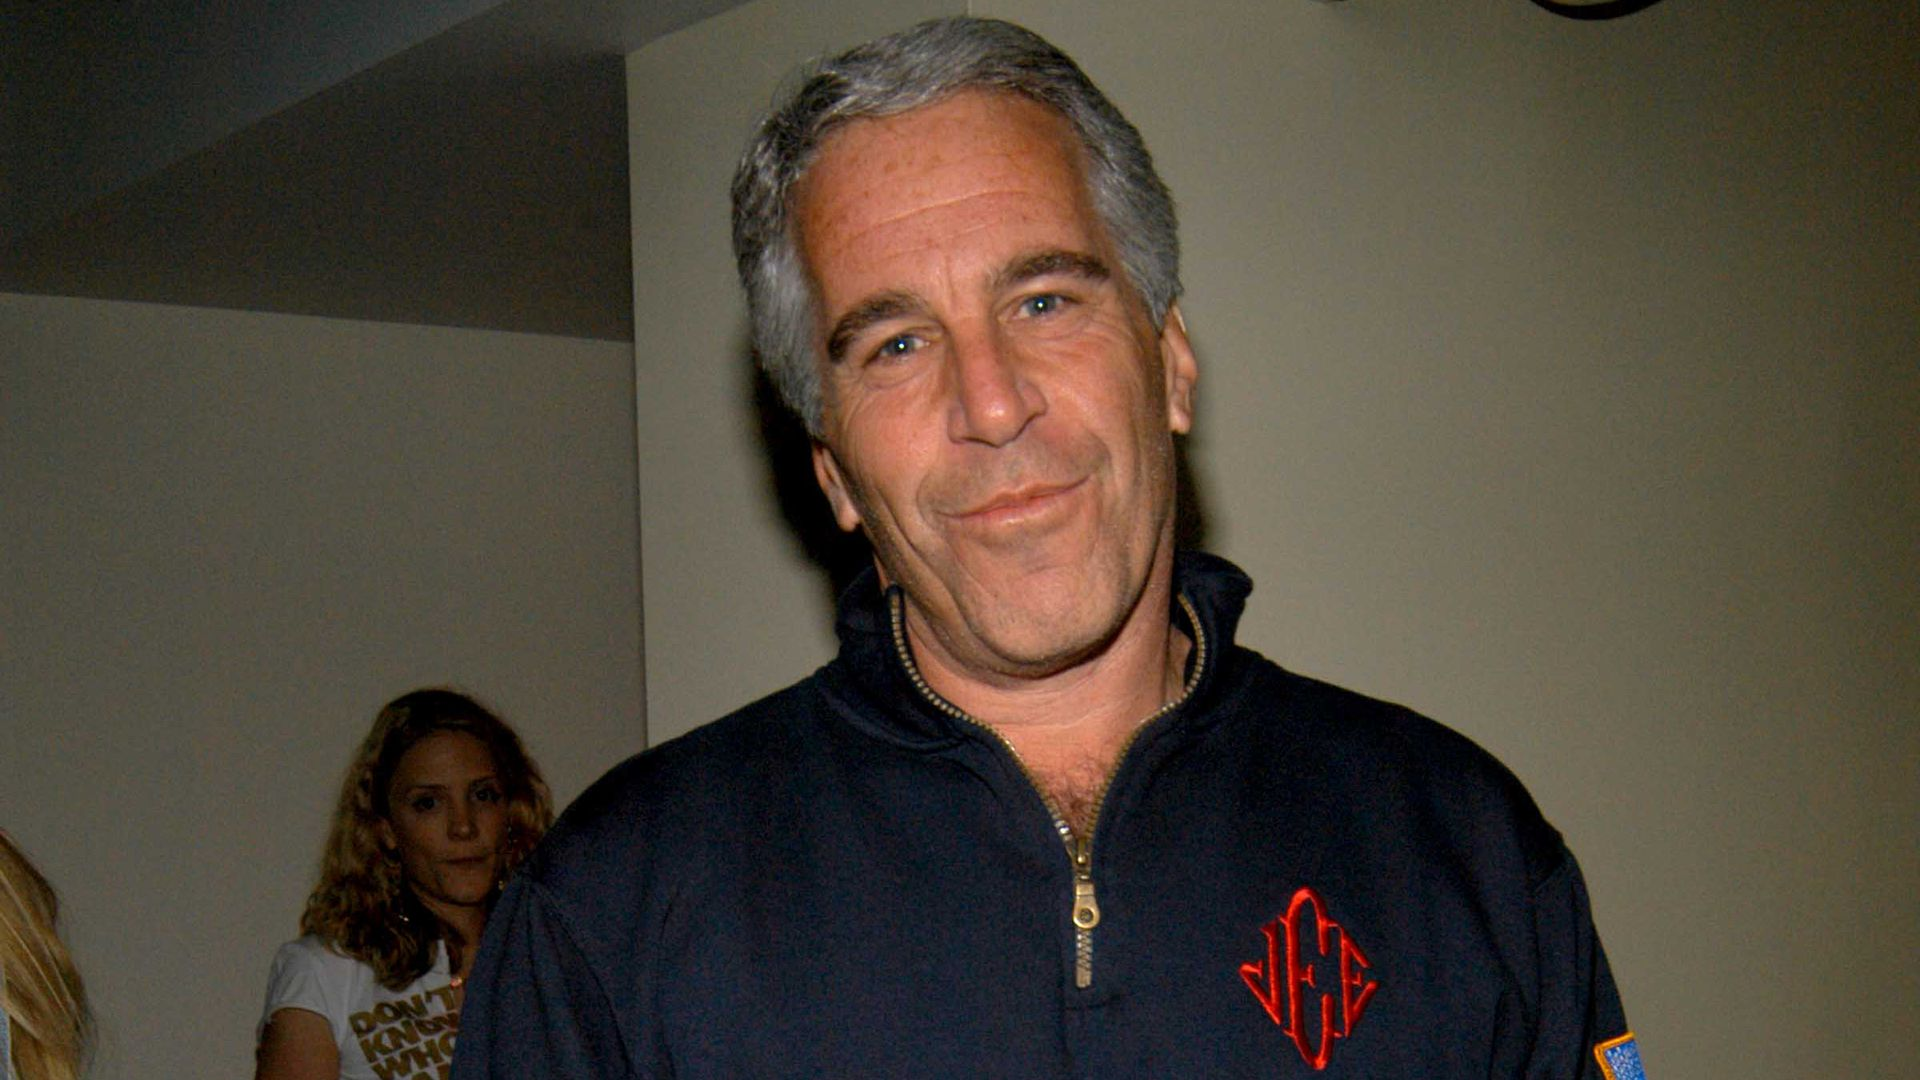 Jeffrey Epstein was convicted of soliciting was a girl who was 16 years old at the time the offenses began.